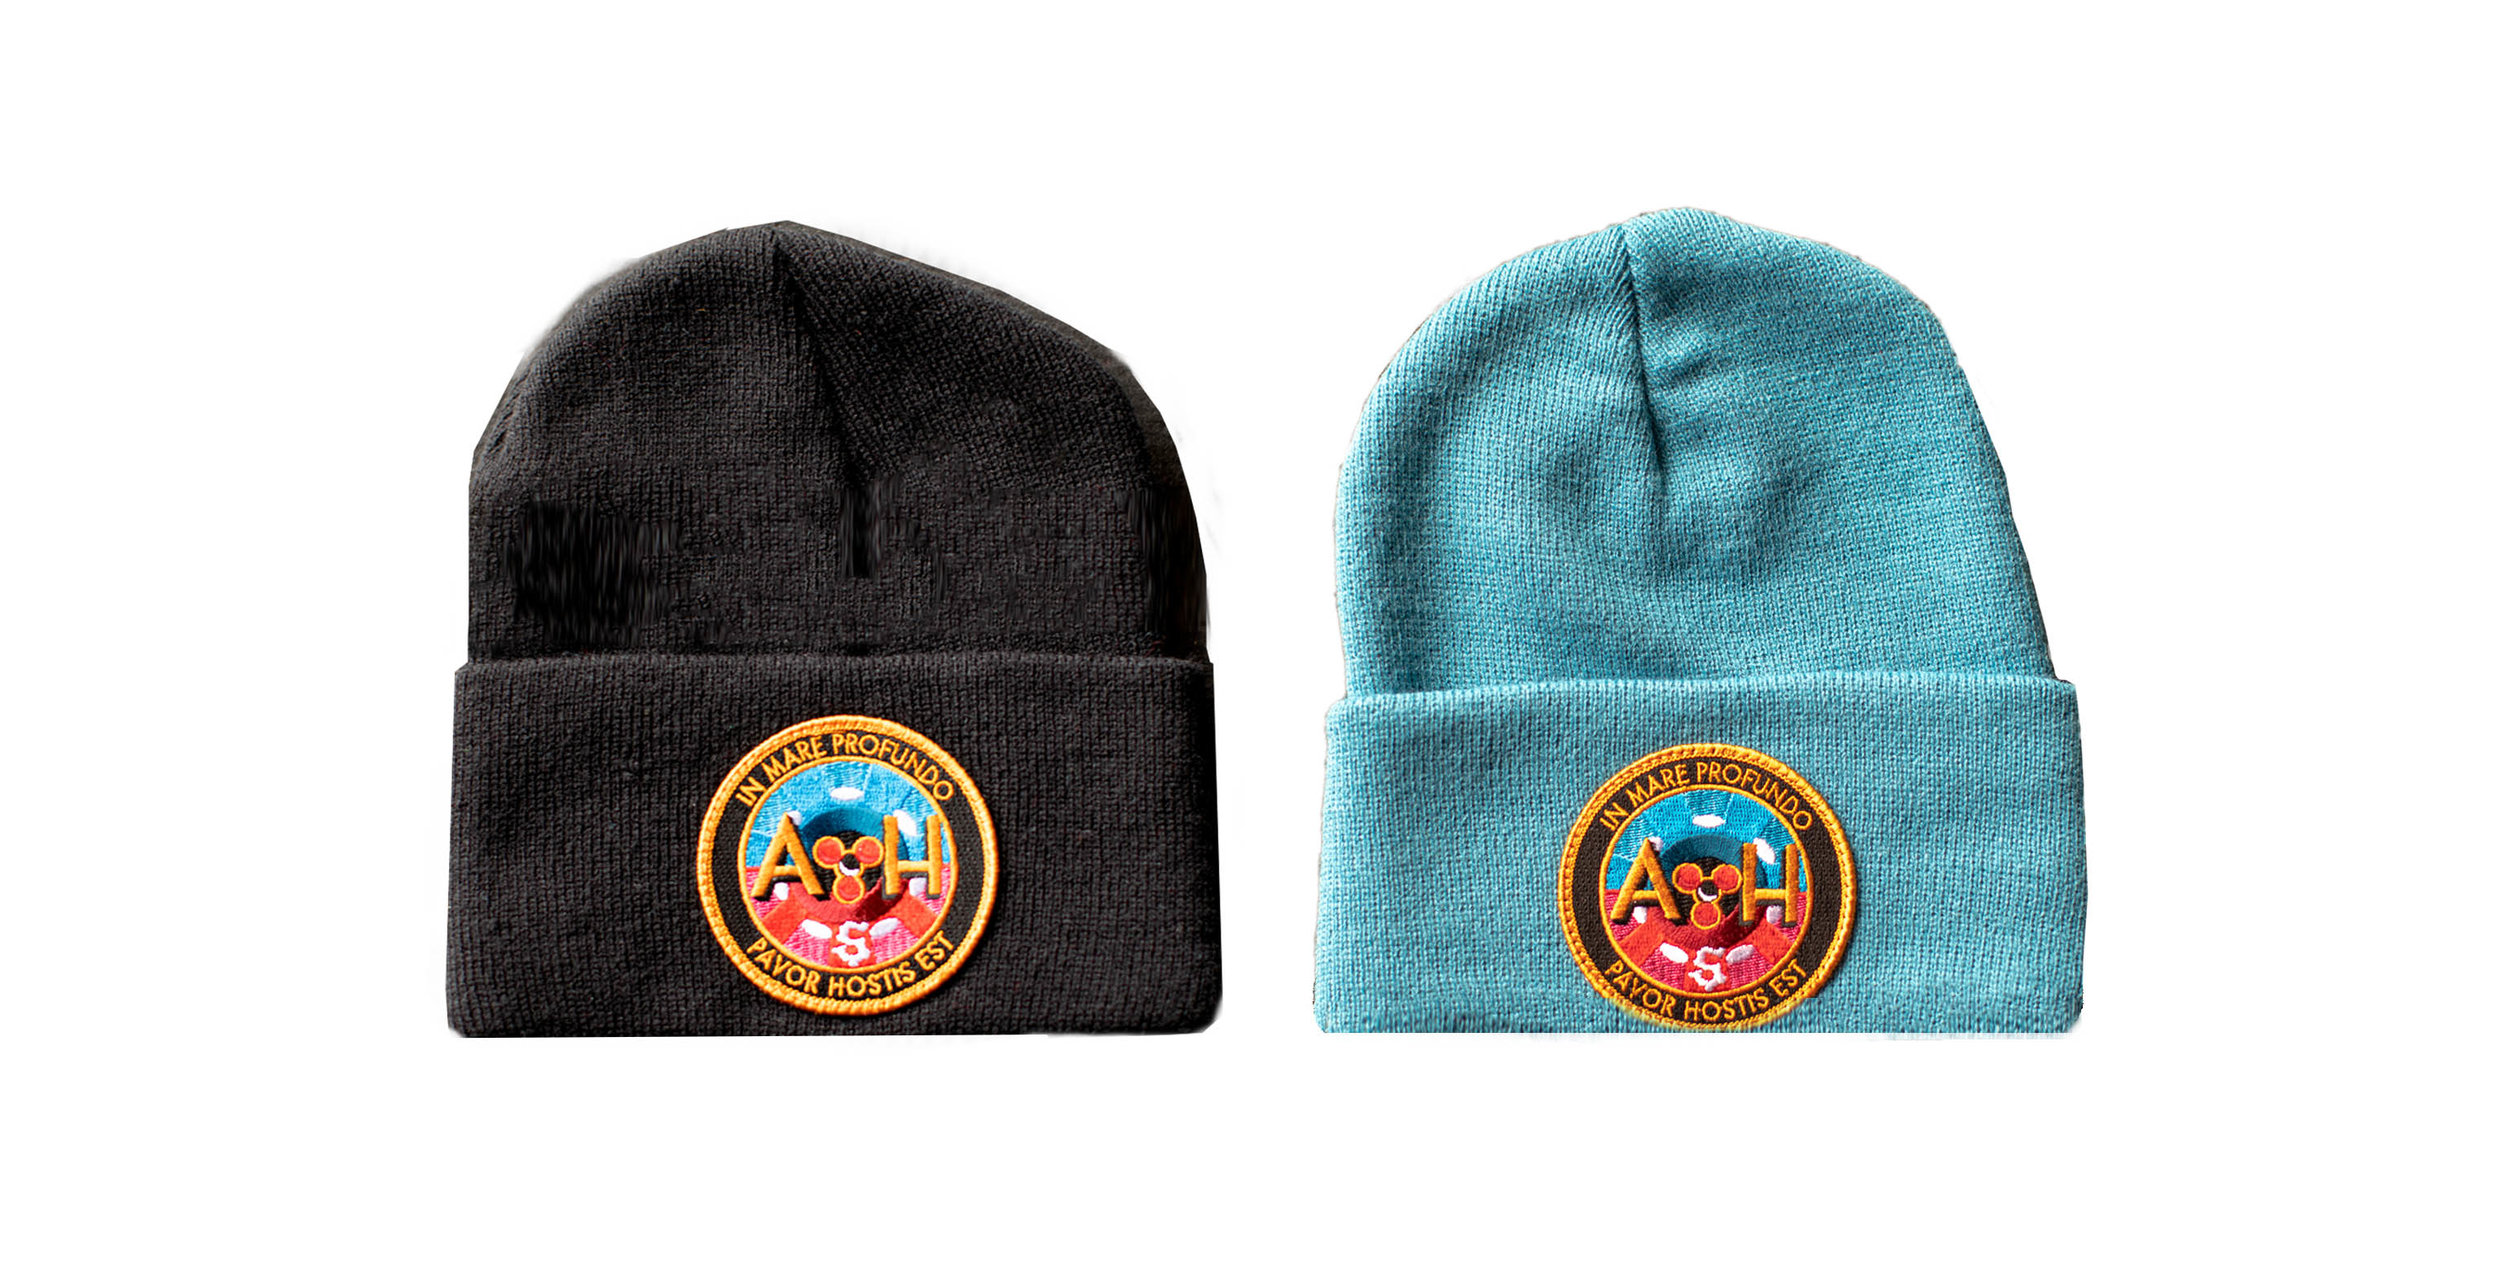 Watch Cap with Official Acid Horizon Mission Patch - Blue or Black. Please specify preference below.